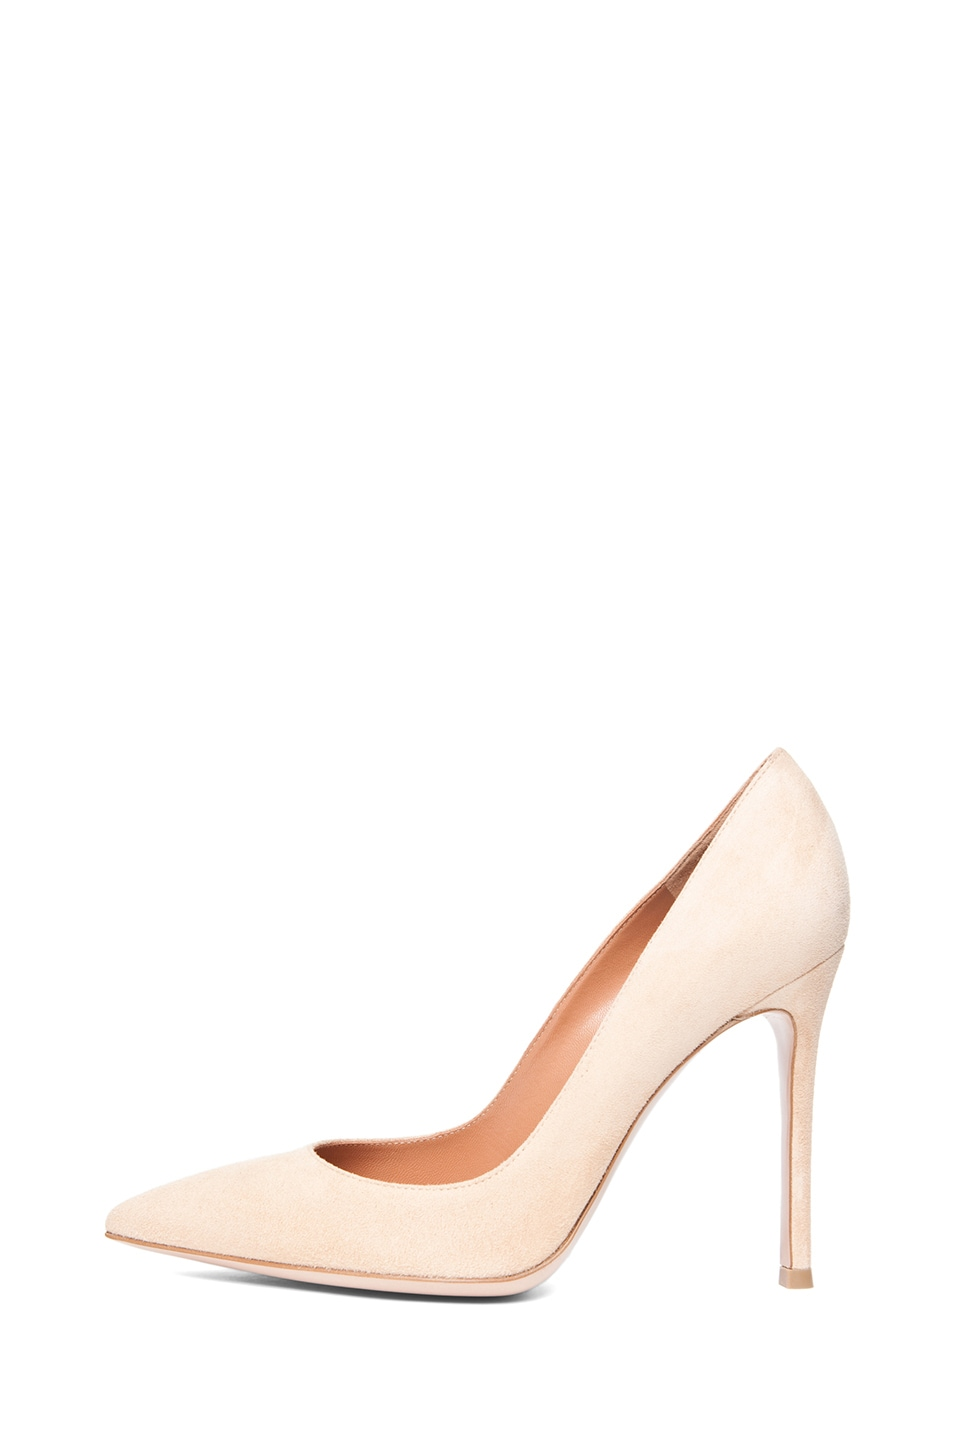 Image 1 of Gianvito Rossi Suede Pumps in Nude